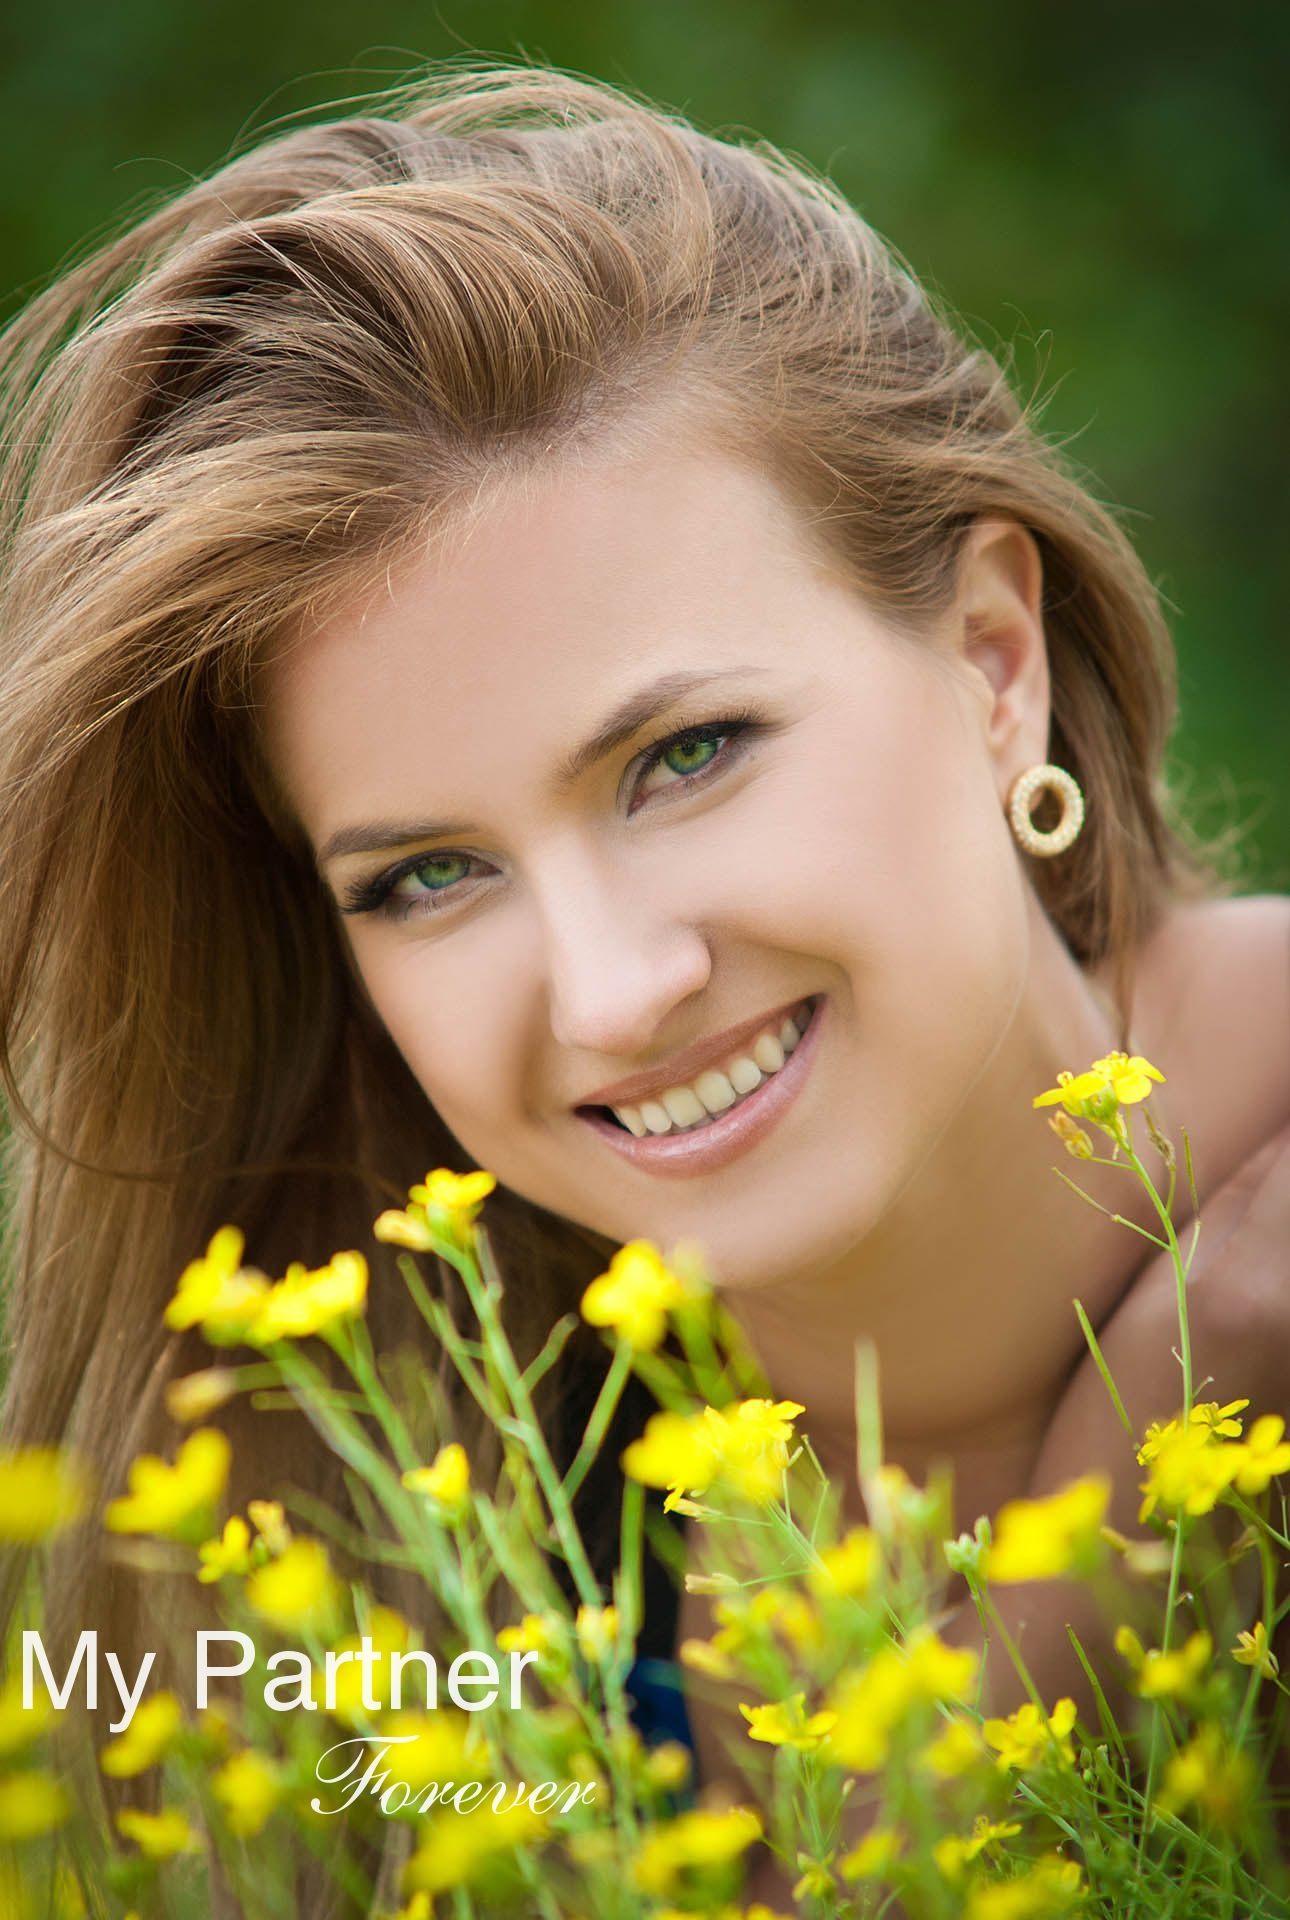 Dating Site to Meet Charming Ukrainian Woman Elena from Zaporozhye, Ukraine